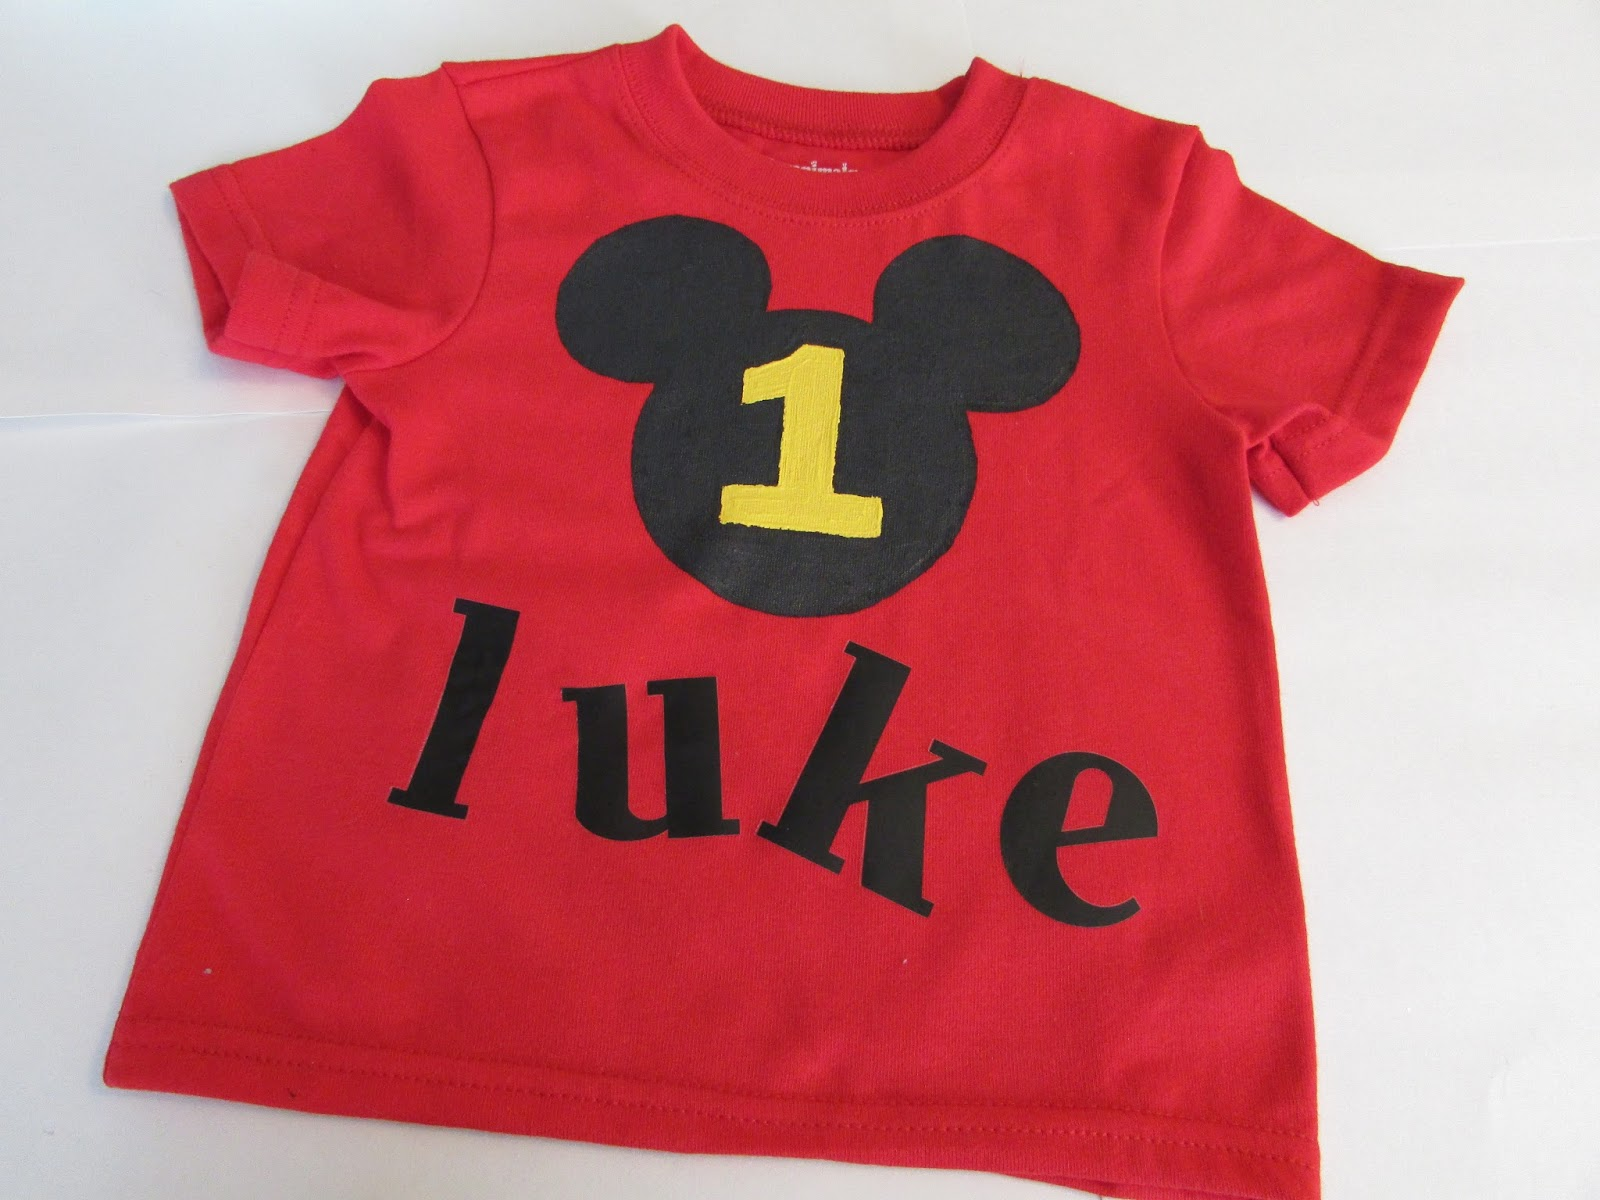 Now You Have A Sweet Personalized Shirt For Your Favorite One Year Old To Rock On Their Birthday Stay Tuned Over The Next Month Lots Of DIYs